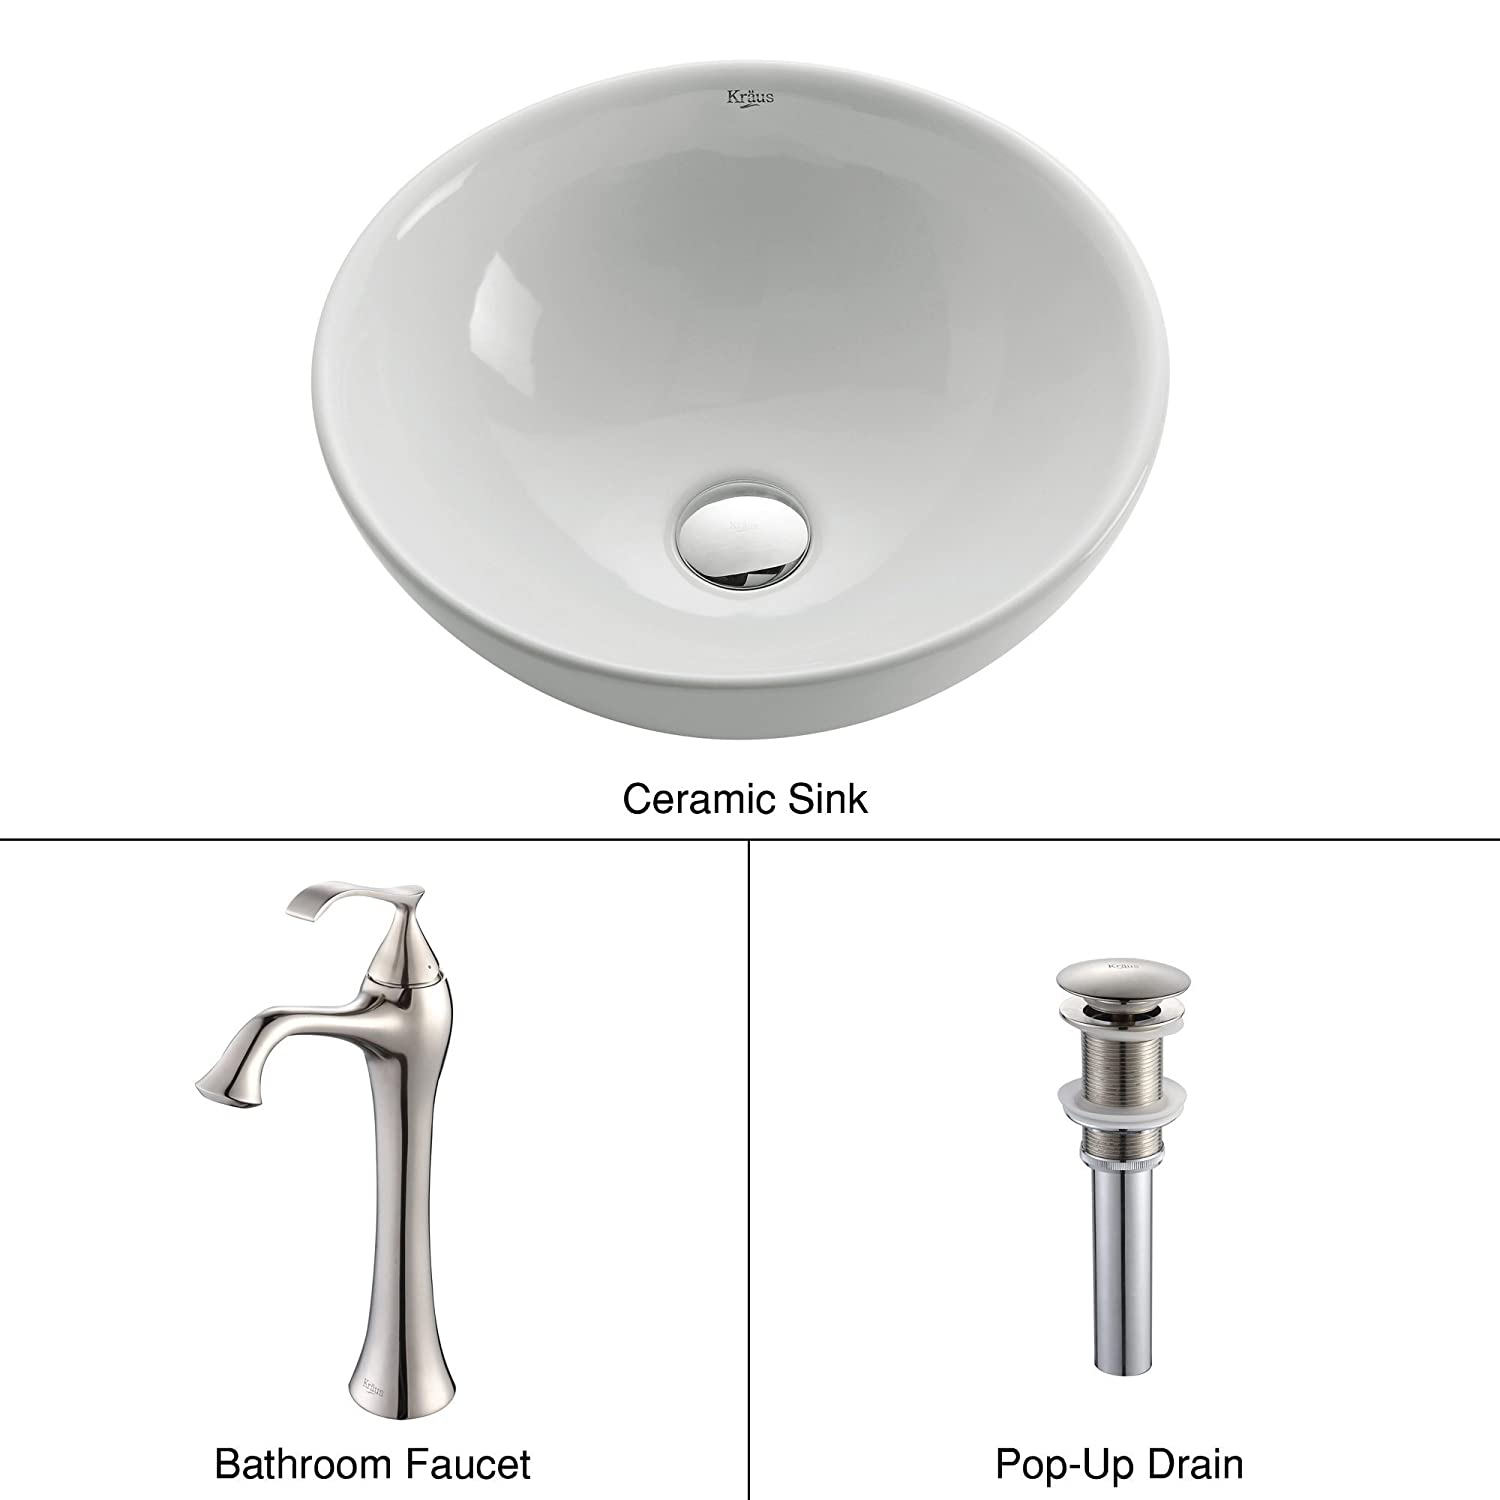 Kraus C-KCV-141-15000BN White Round Ceramic Sink and Ventus Faucet Brushed Nickel